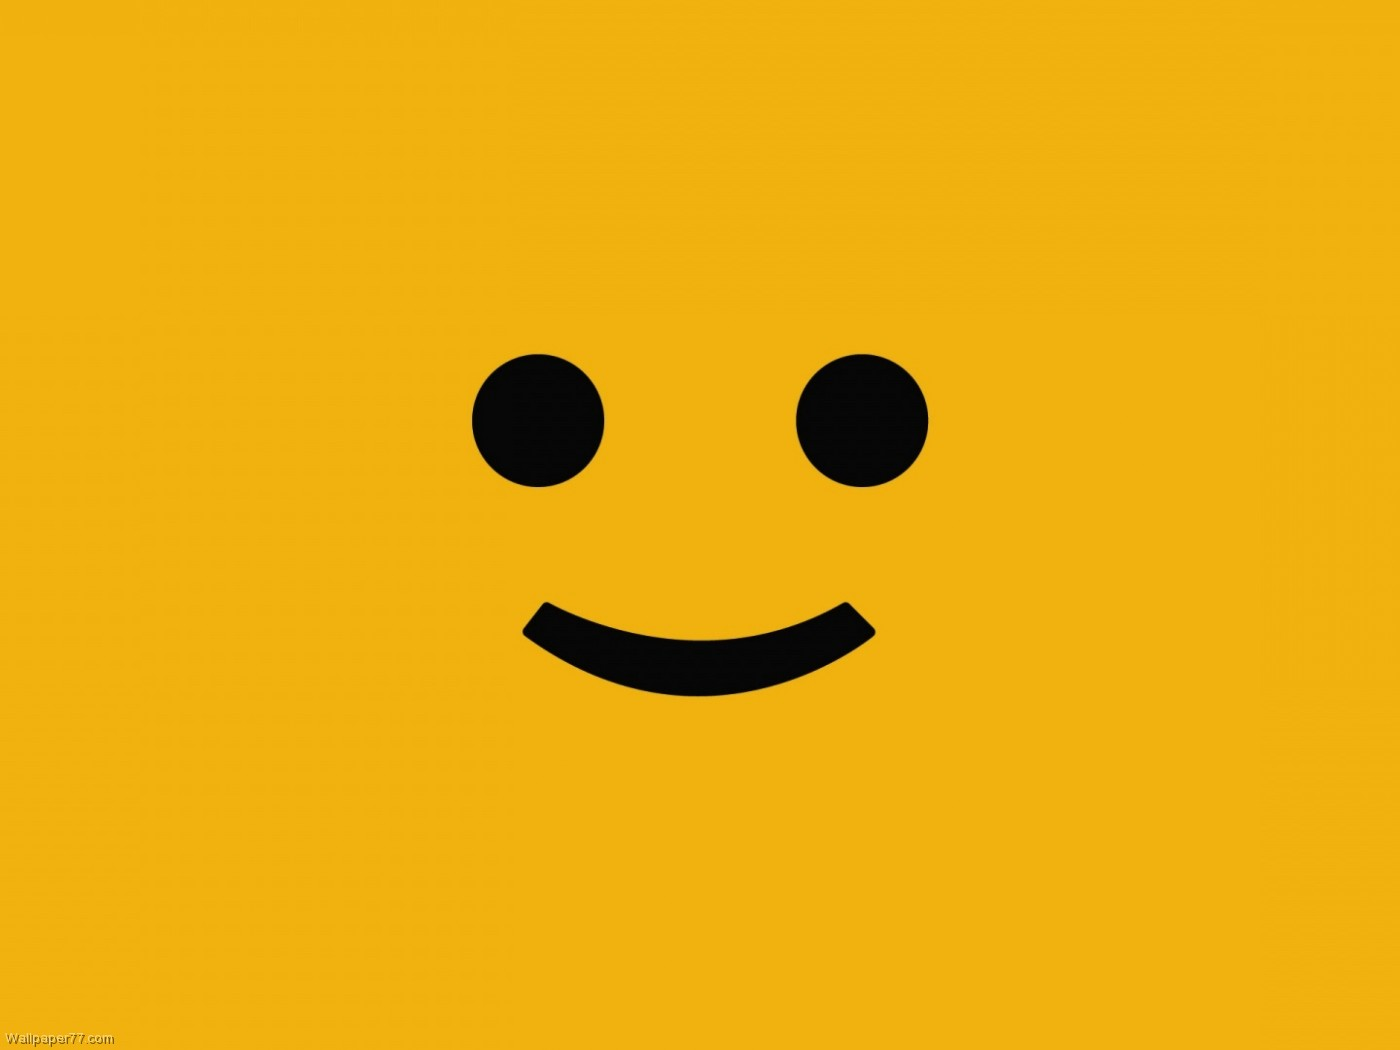 smiley face background 1400x1050 pixels Wallpapers 1400x1050